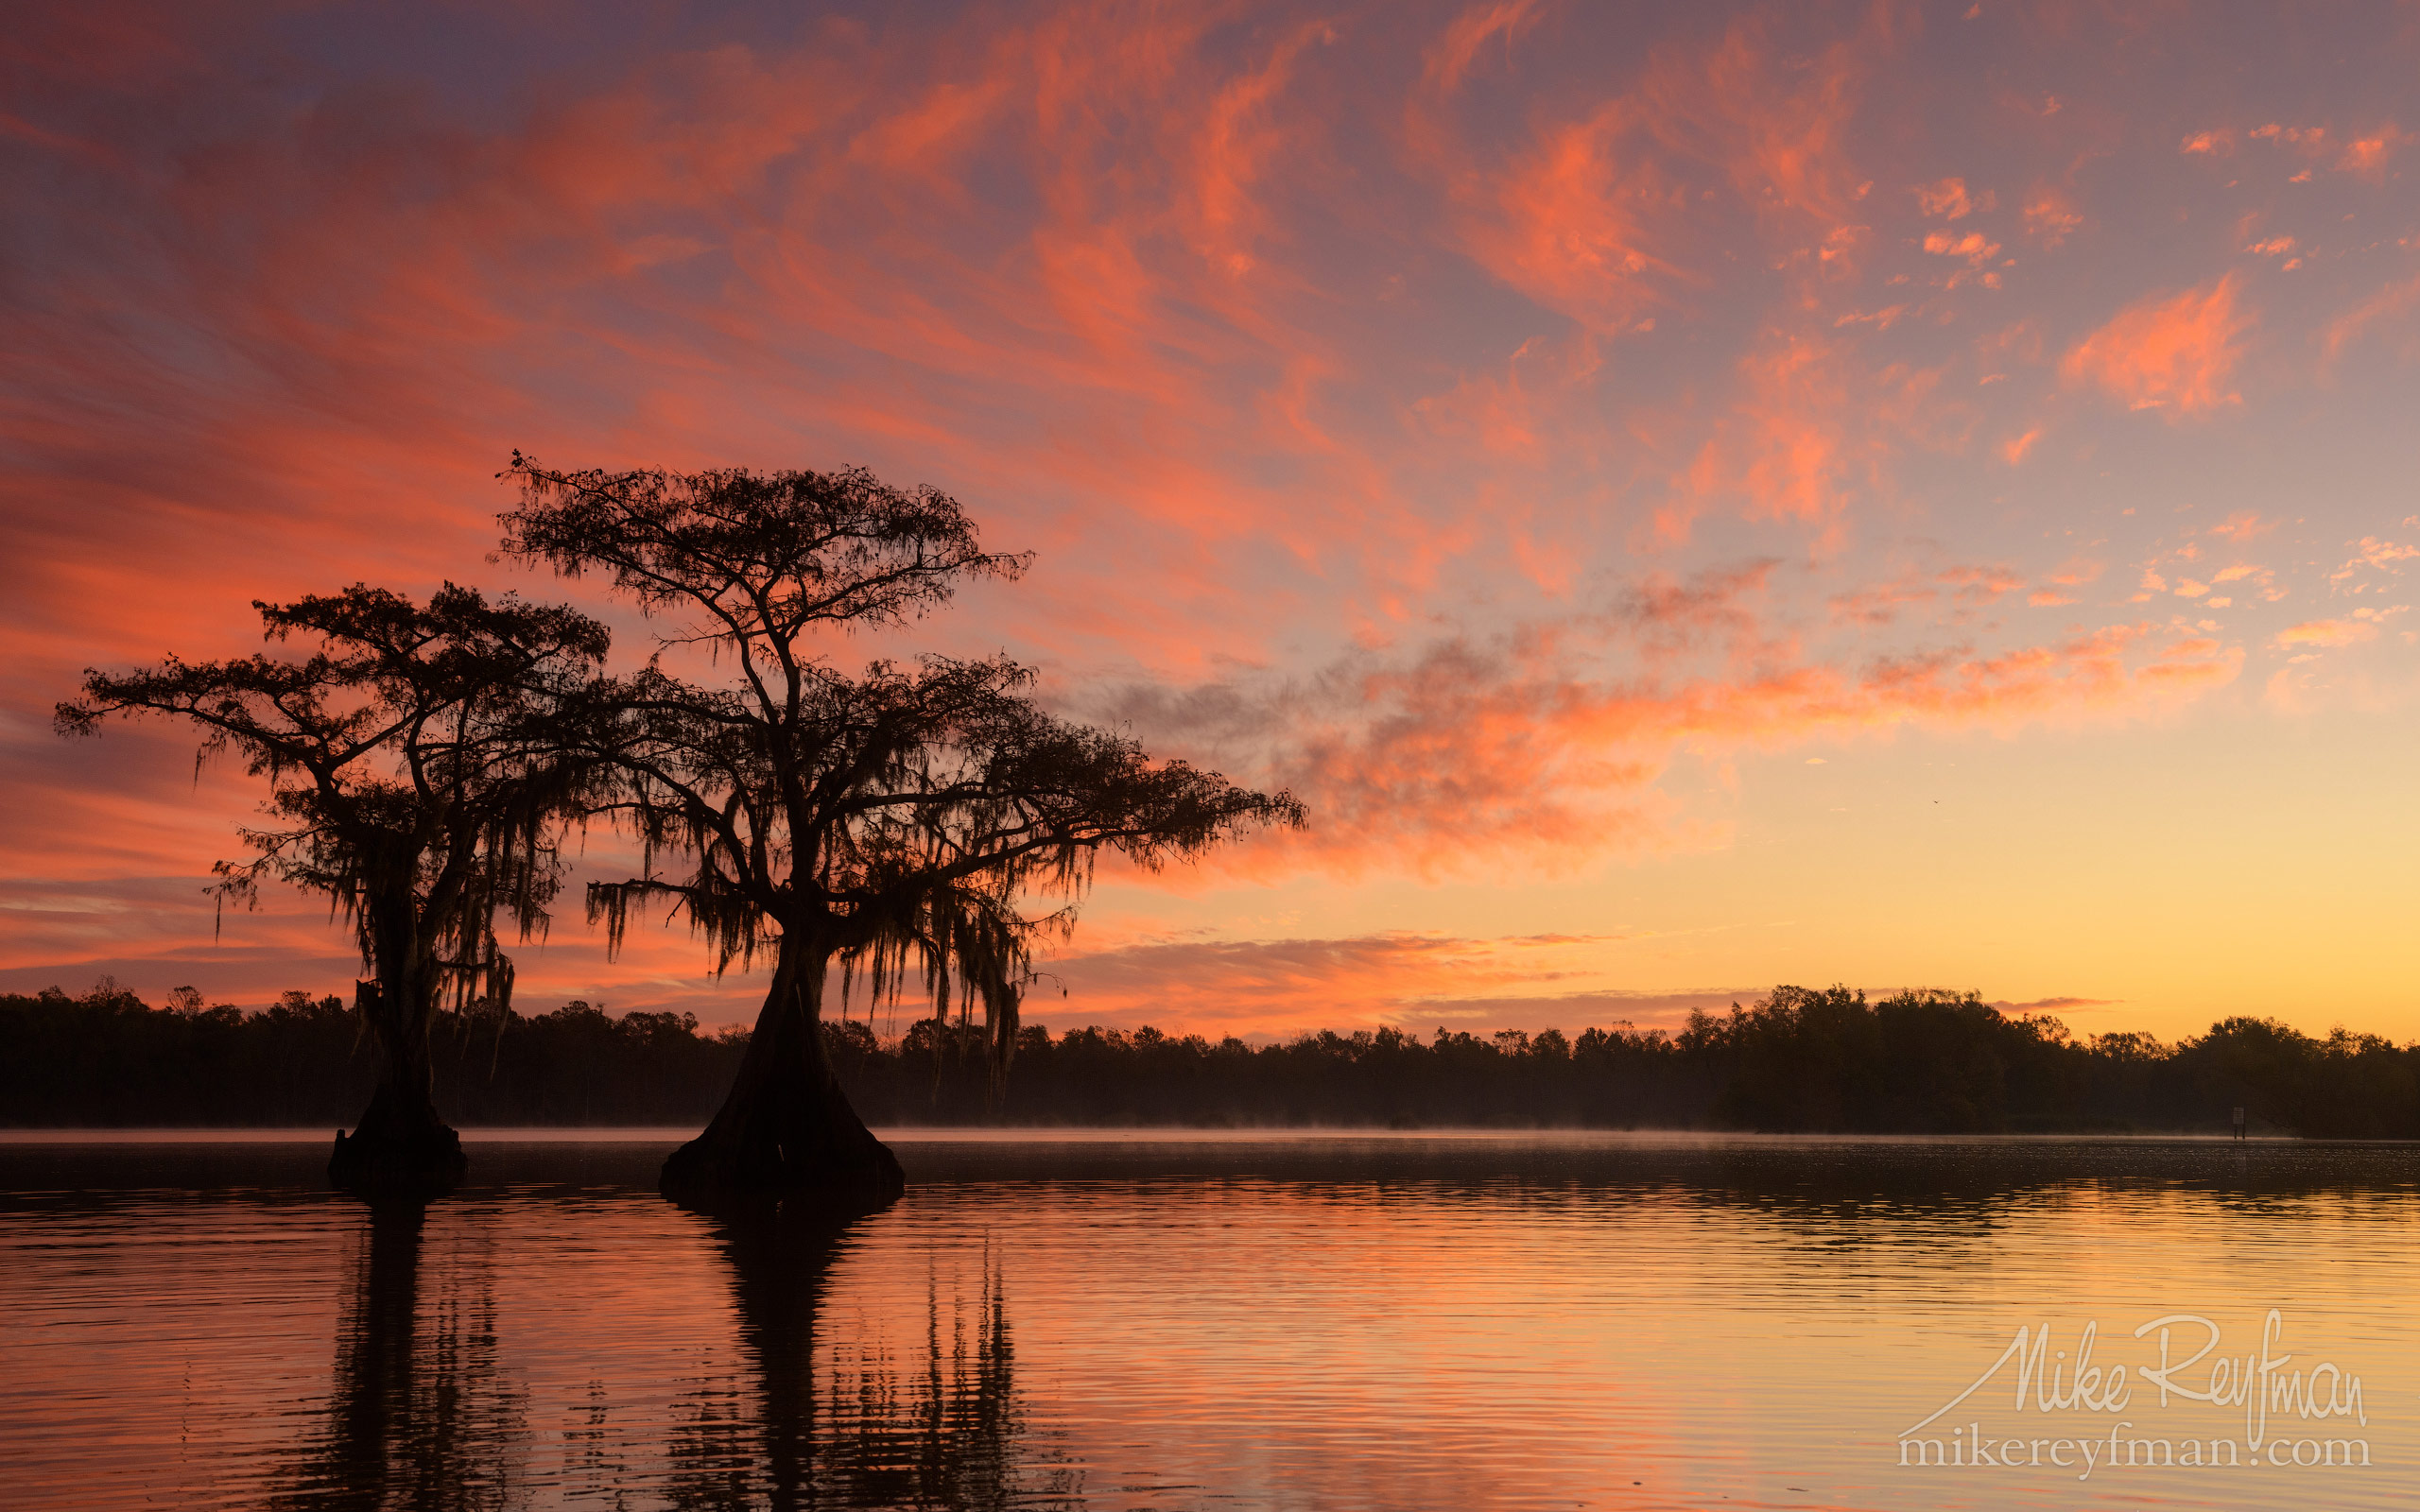 Bald Cypress trees covered in Spanish Moss at sunrise. Lake Fausse, Louisiana, US 084-LT1-50A4277.jpg - Bold Cypress and Tupelo Trees in the swamps of Atchafalaya River Basin. Caddo, Martin and Fousse Lakes. Texas/Louisiana, USA. - Mike Reyfman Photography